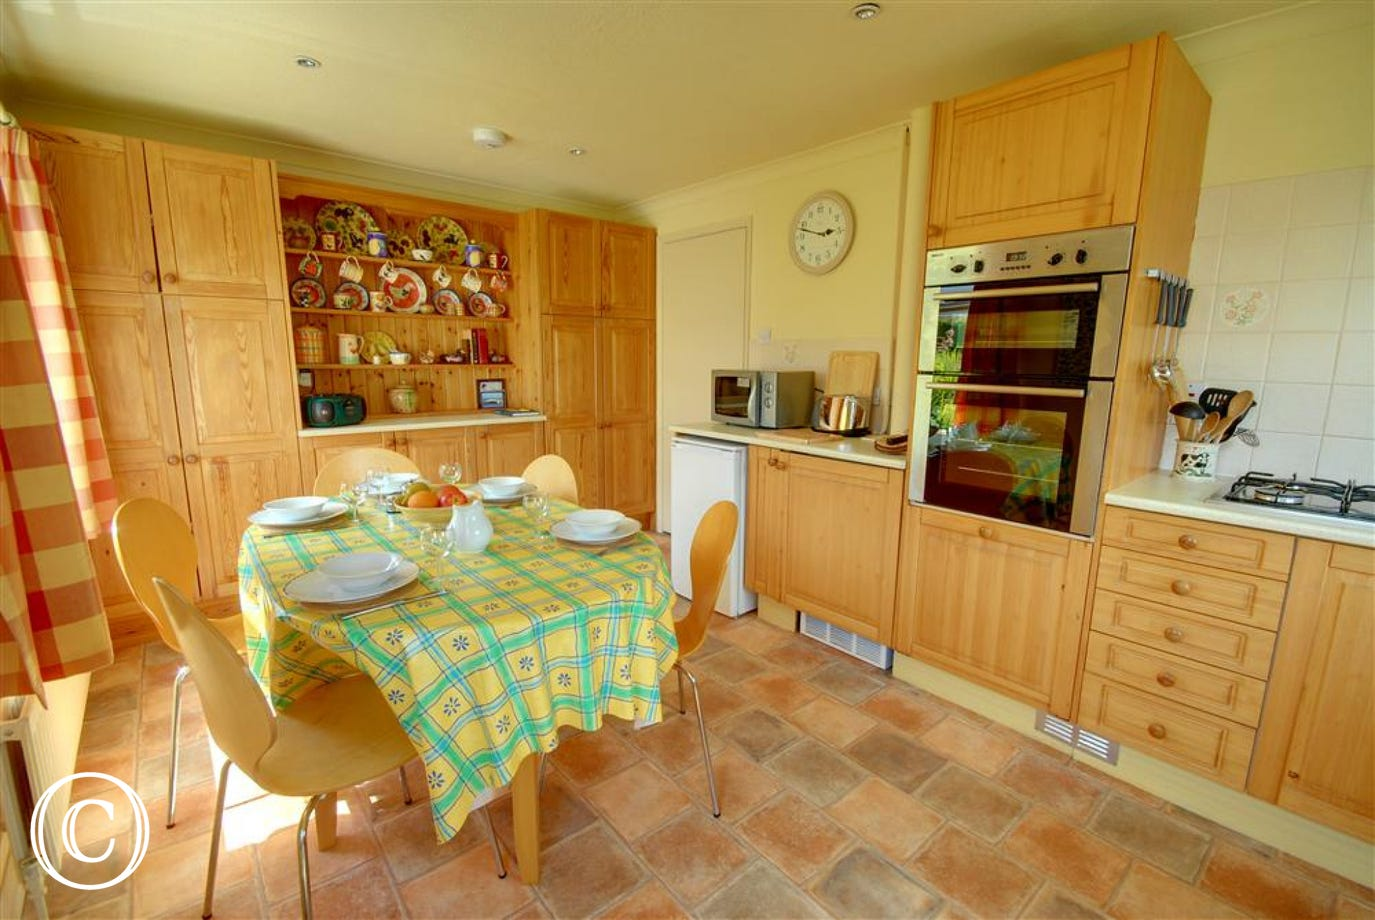 Country style kitchen, well equipped and plenty of units and worktops to prepare meals on